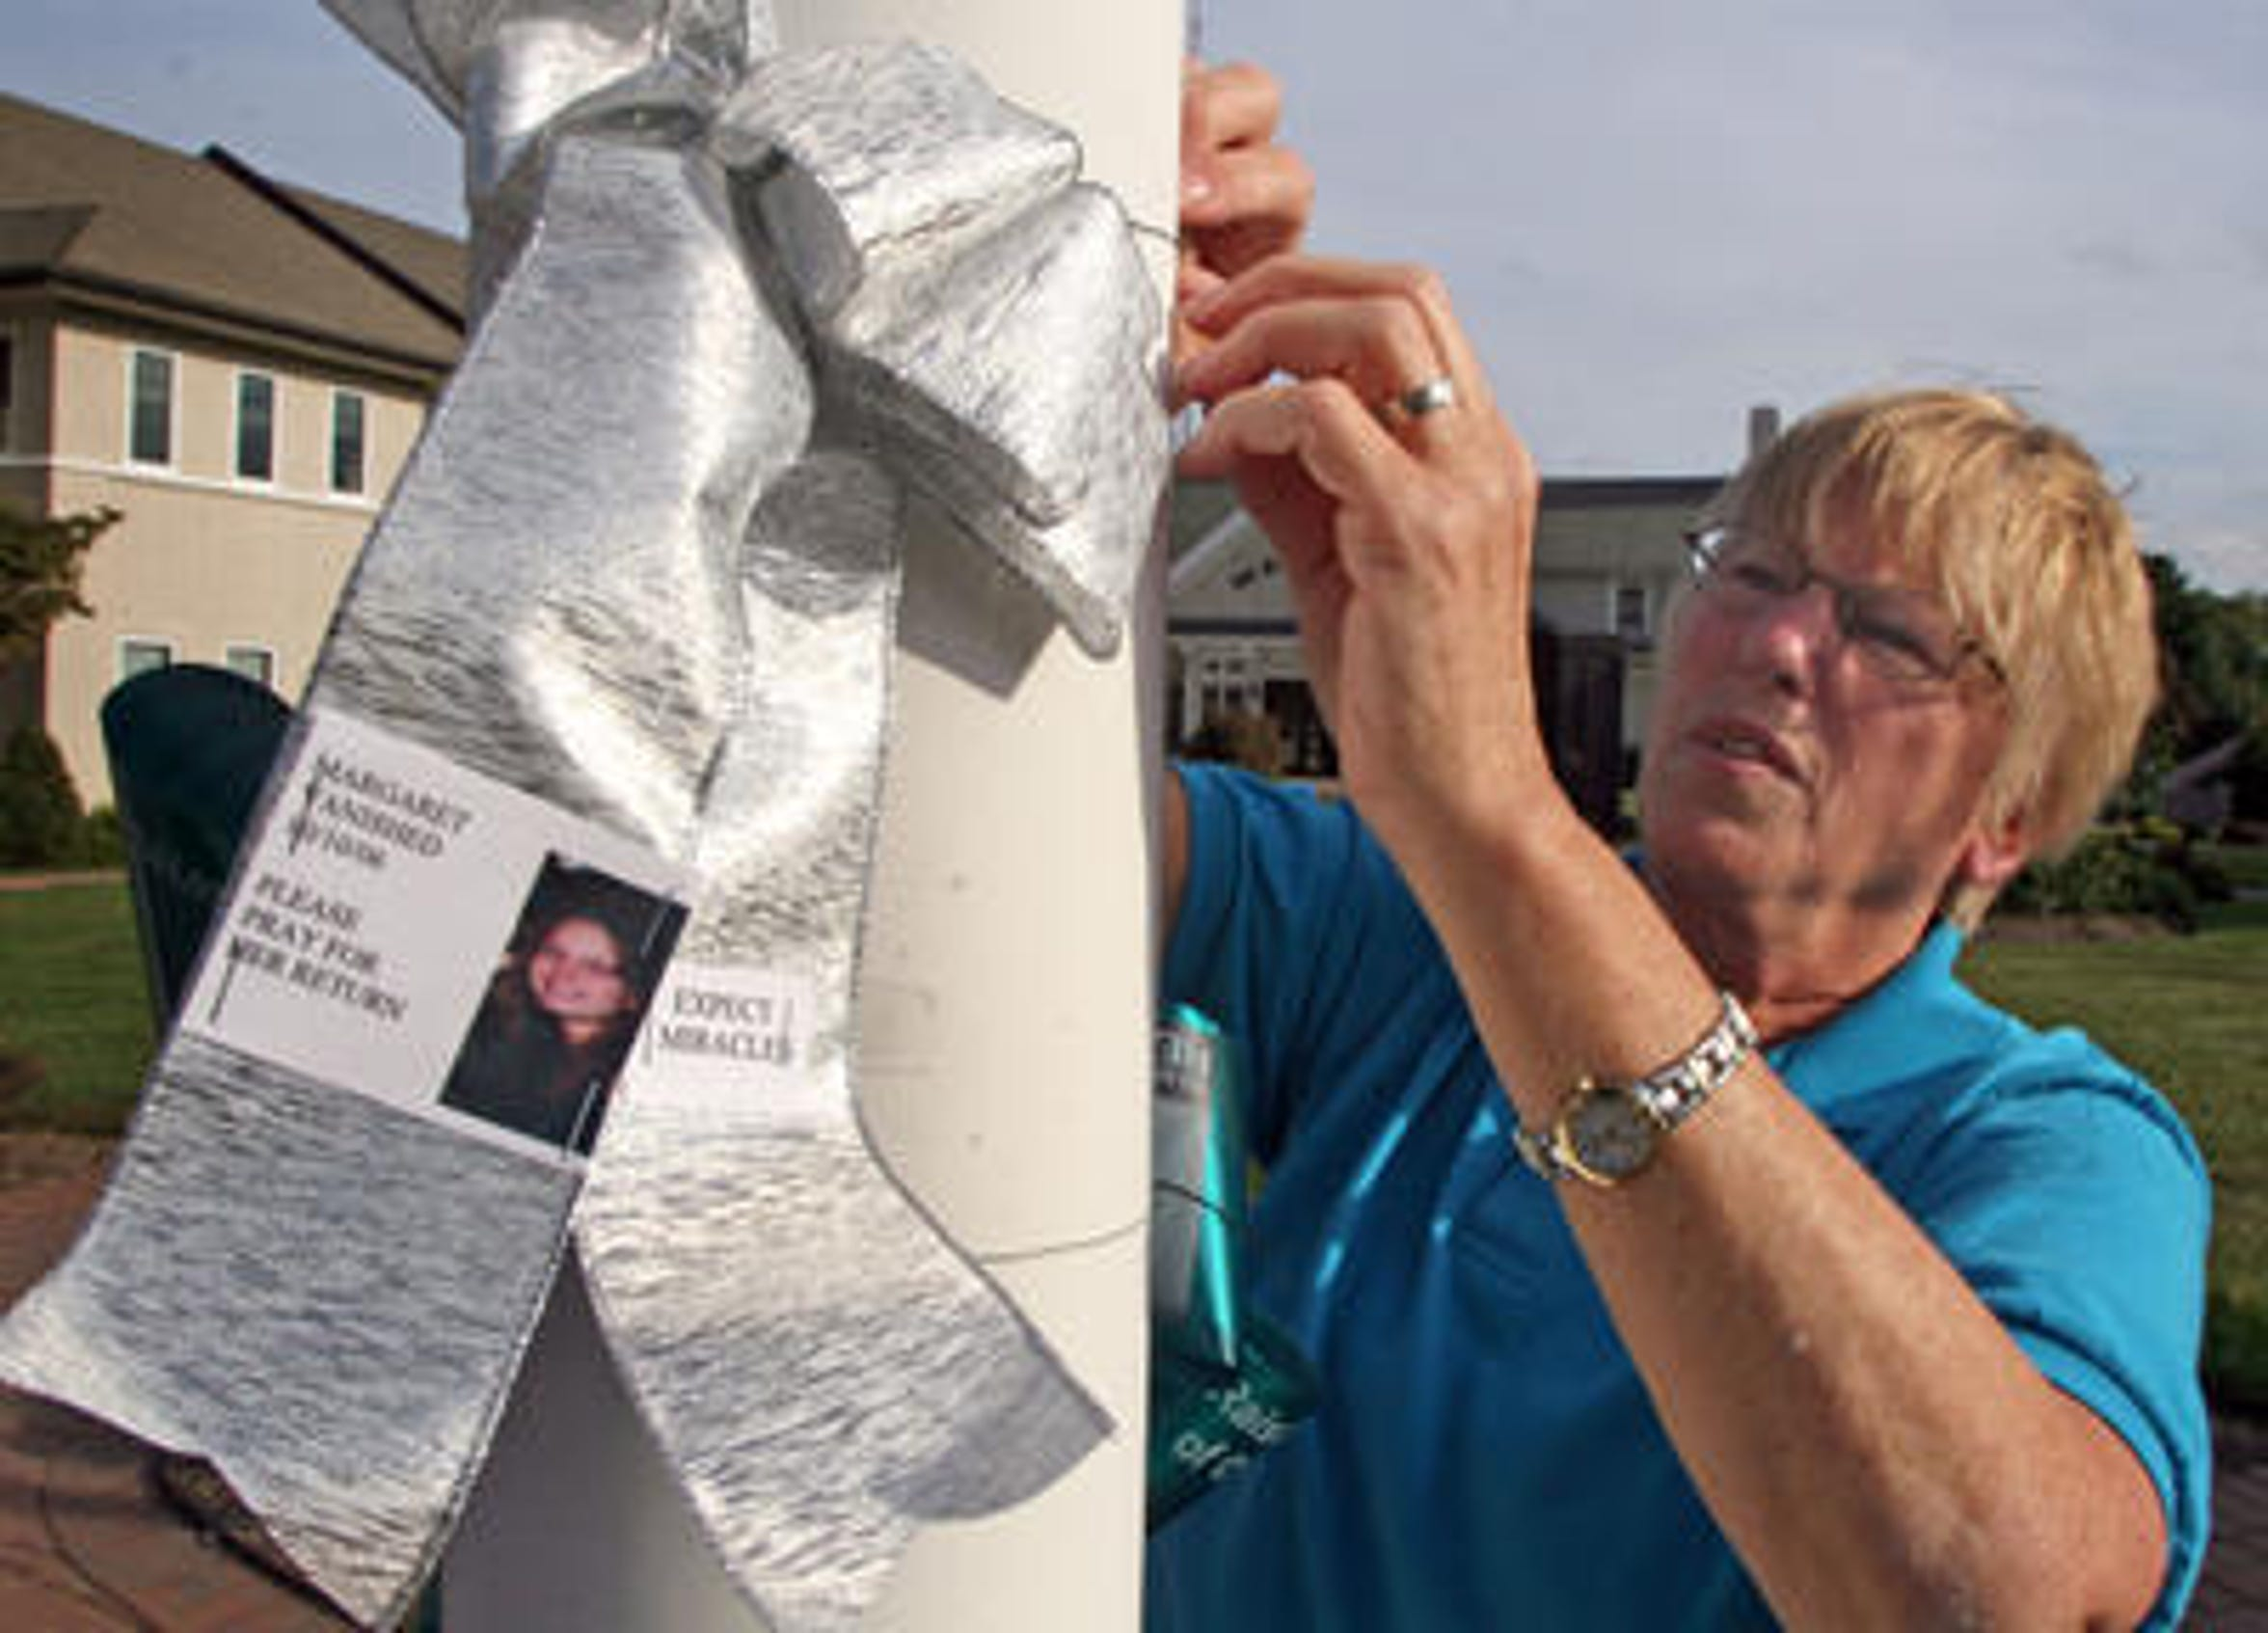 Eileen Haddican mother of Margaret Haddican-McEnroe ties a ribbon with a photo of her daughter at the Warren municipal complex. Ribbons are hung around the area each year marking the October 10, 2006 anniversary of Haddican-McEnroe's disappearance.